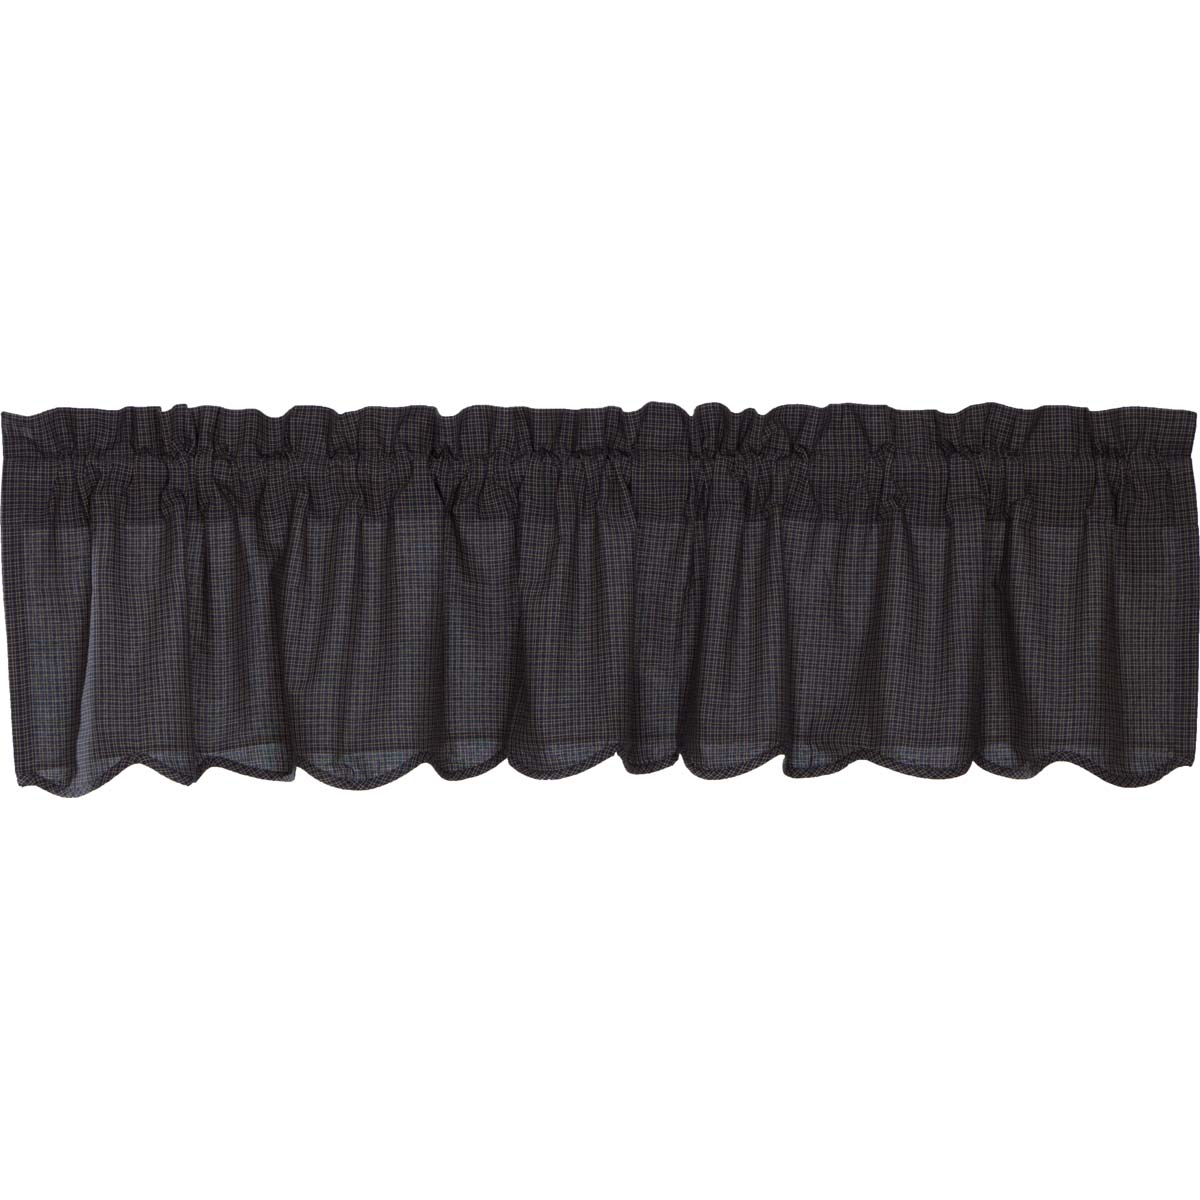 Arlington Valance Scalloped 16x72